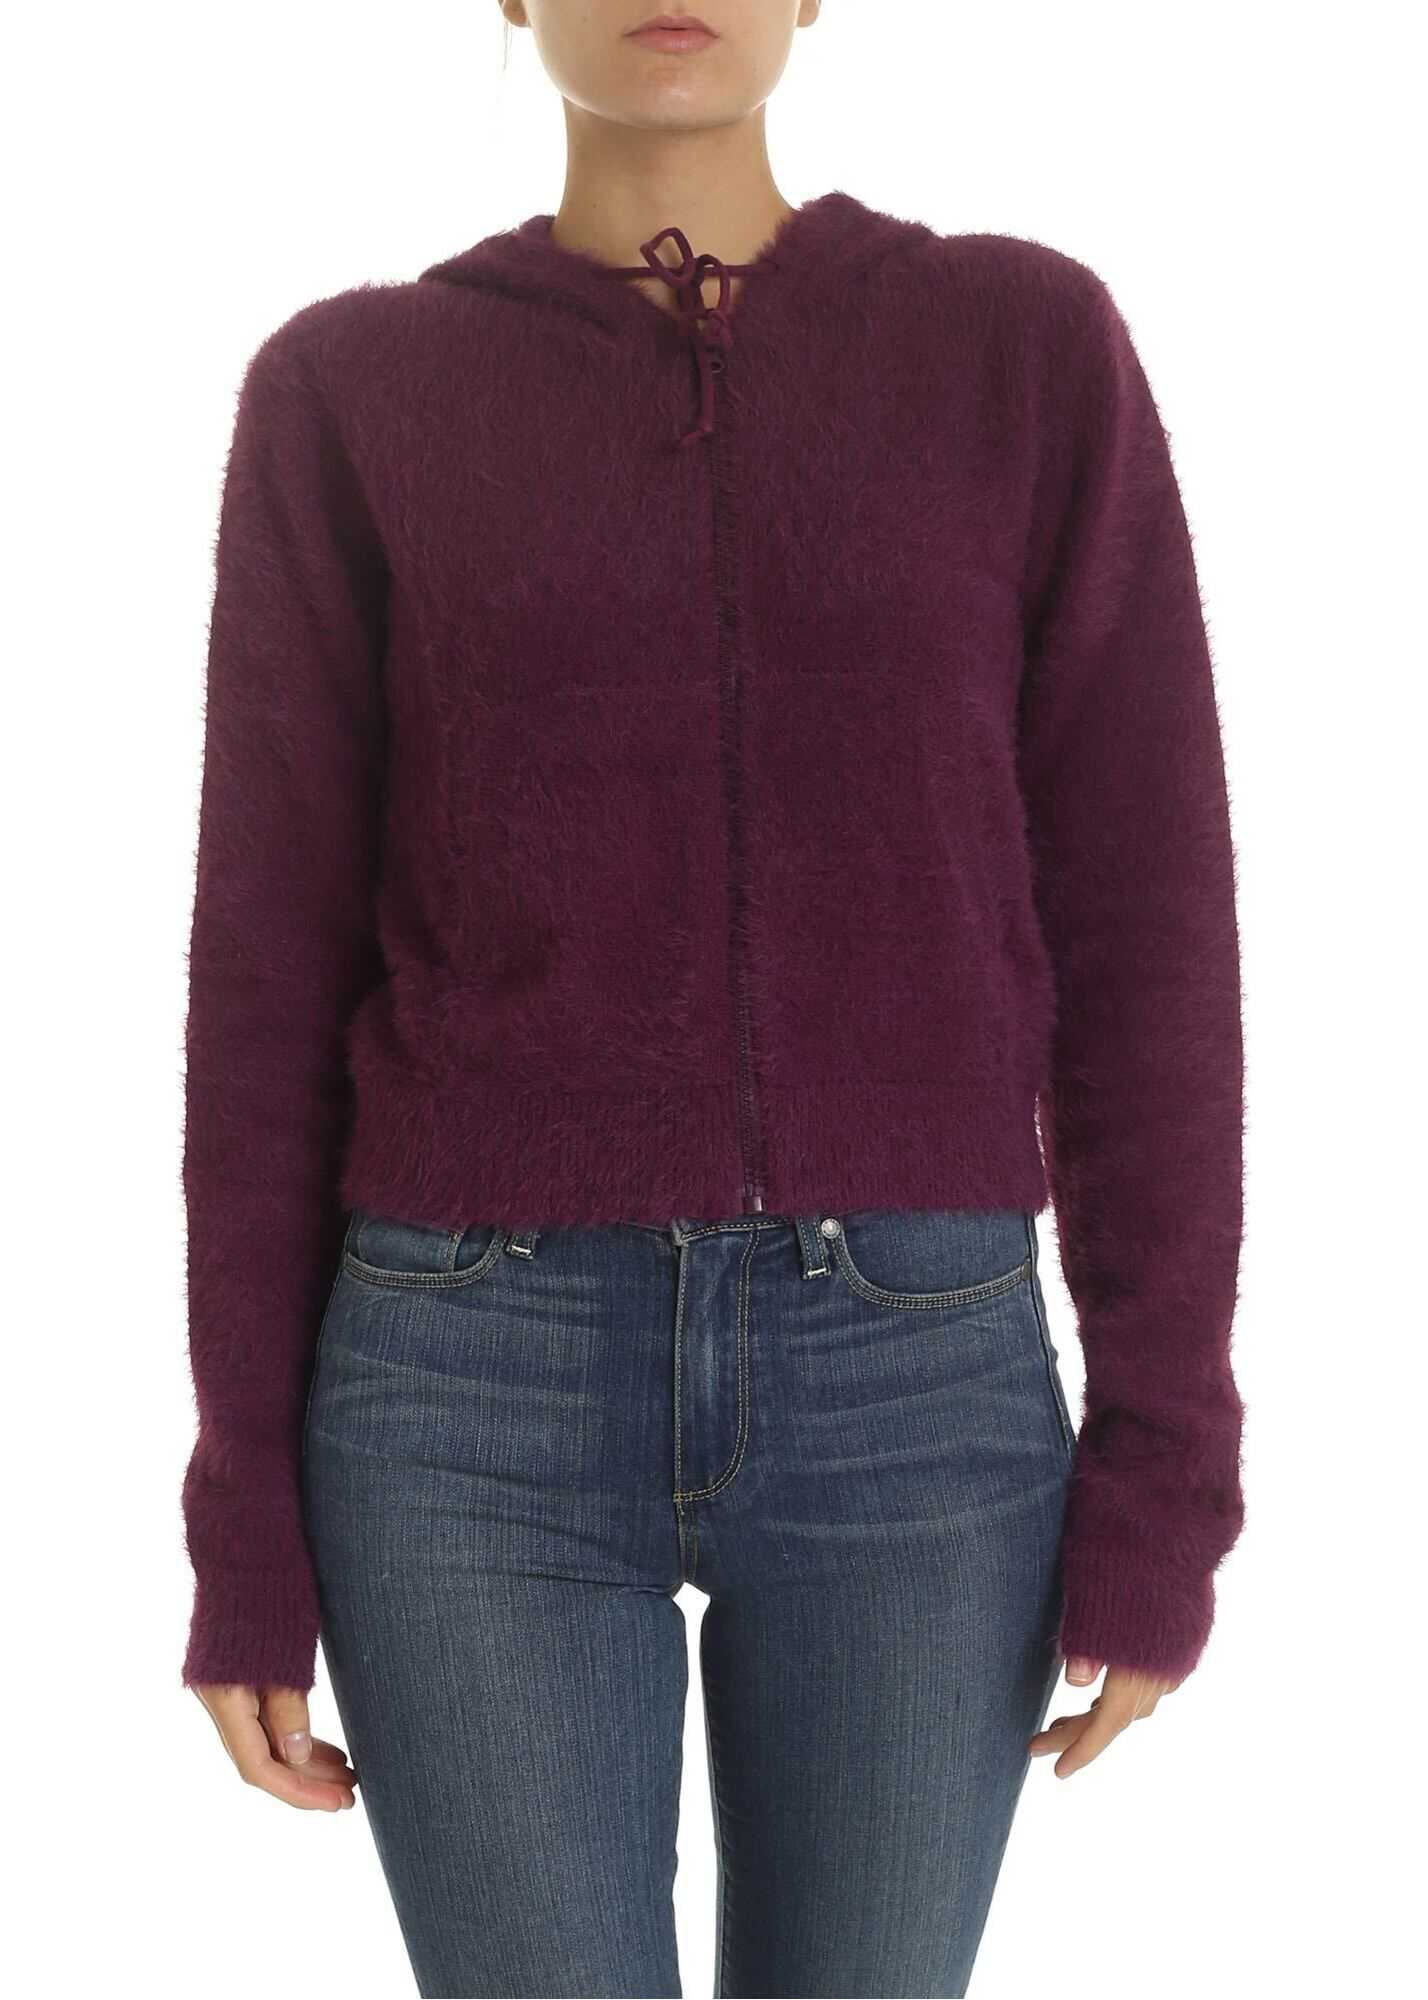 Haflinger Sweatshirt In Purple thumbnail